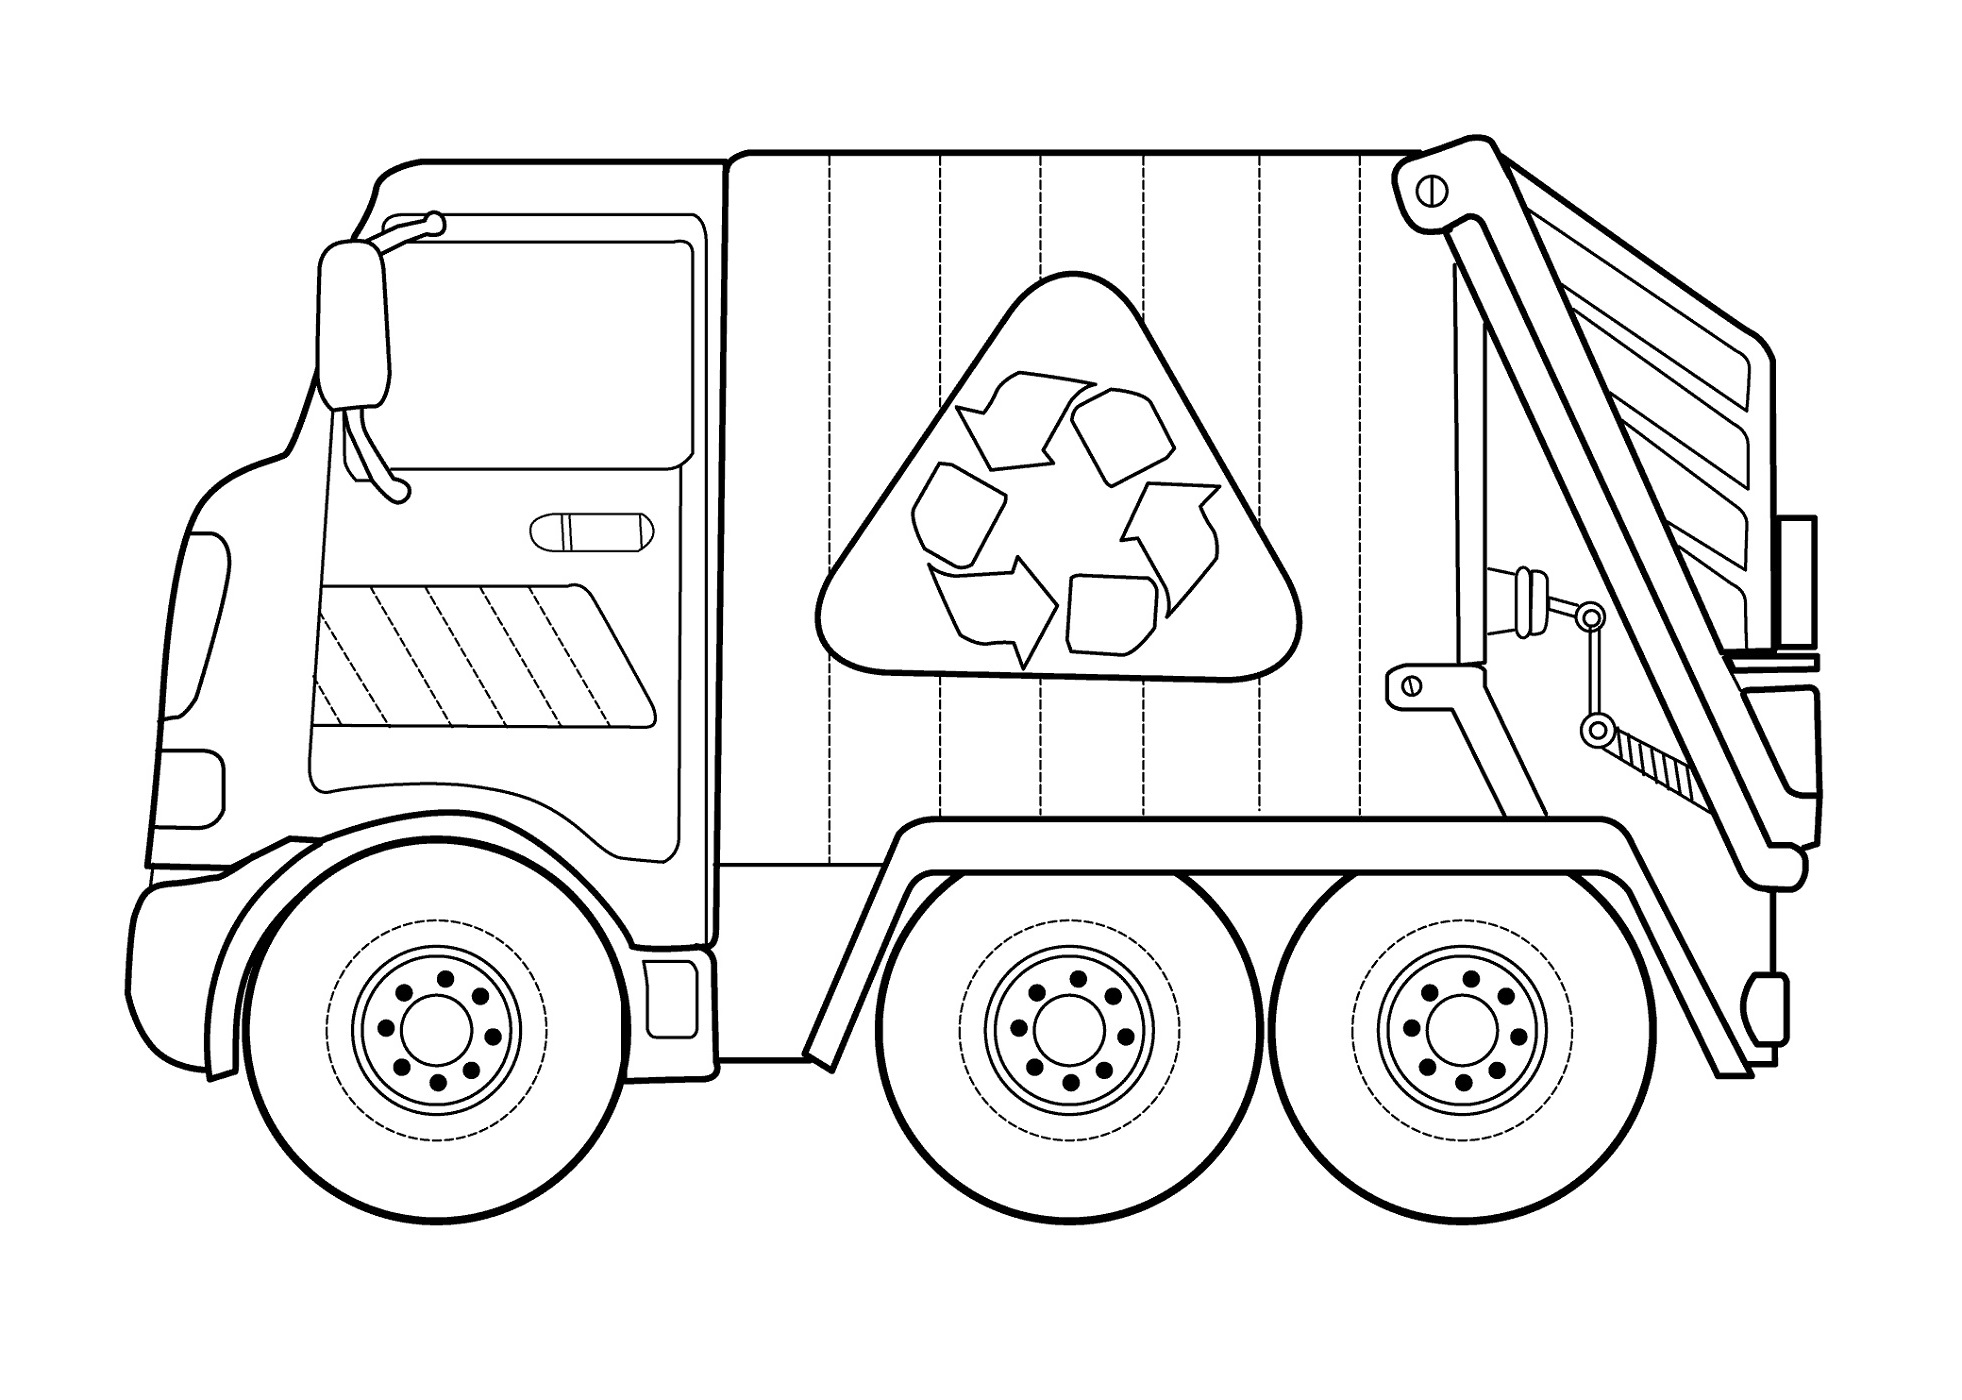 recycling truck coloring page garbage truck coloring pages coloring pages to download recycling page truck coloring